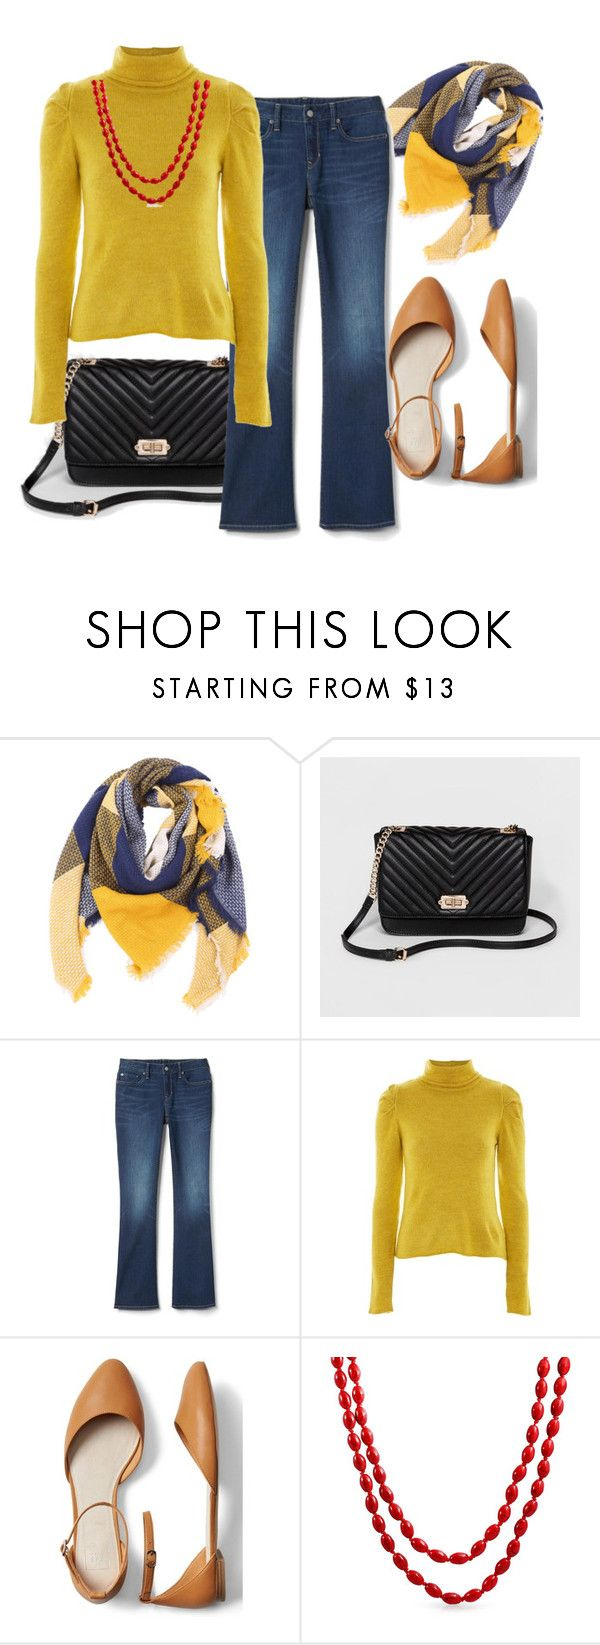 """""""Hijab Ideas"""" by pramesvvari ❤ liked on Polyvore featuring Topshop, Gap and Bling Jewelry"""